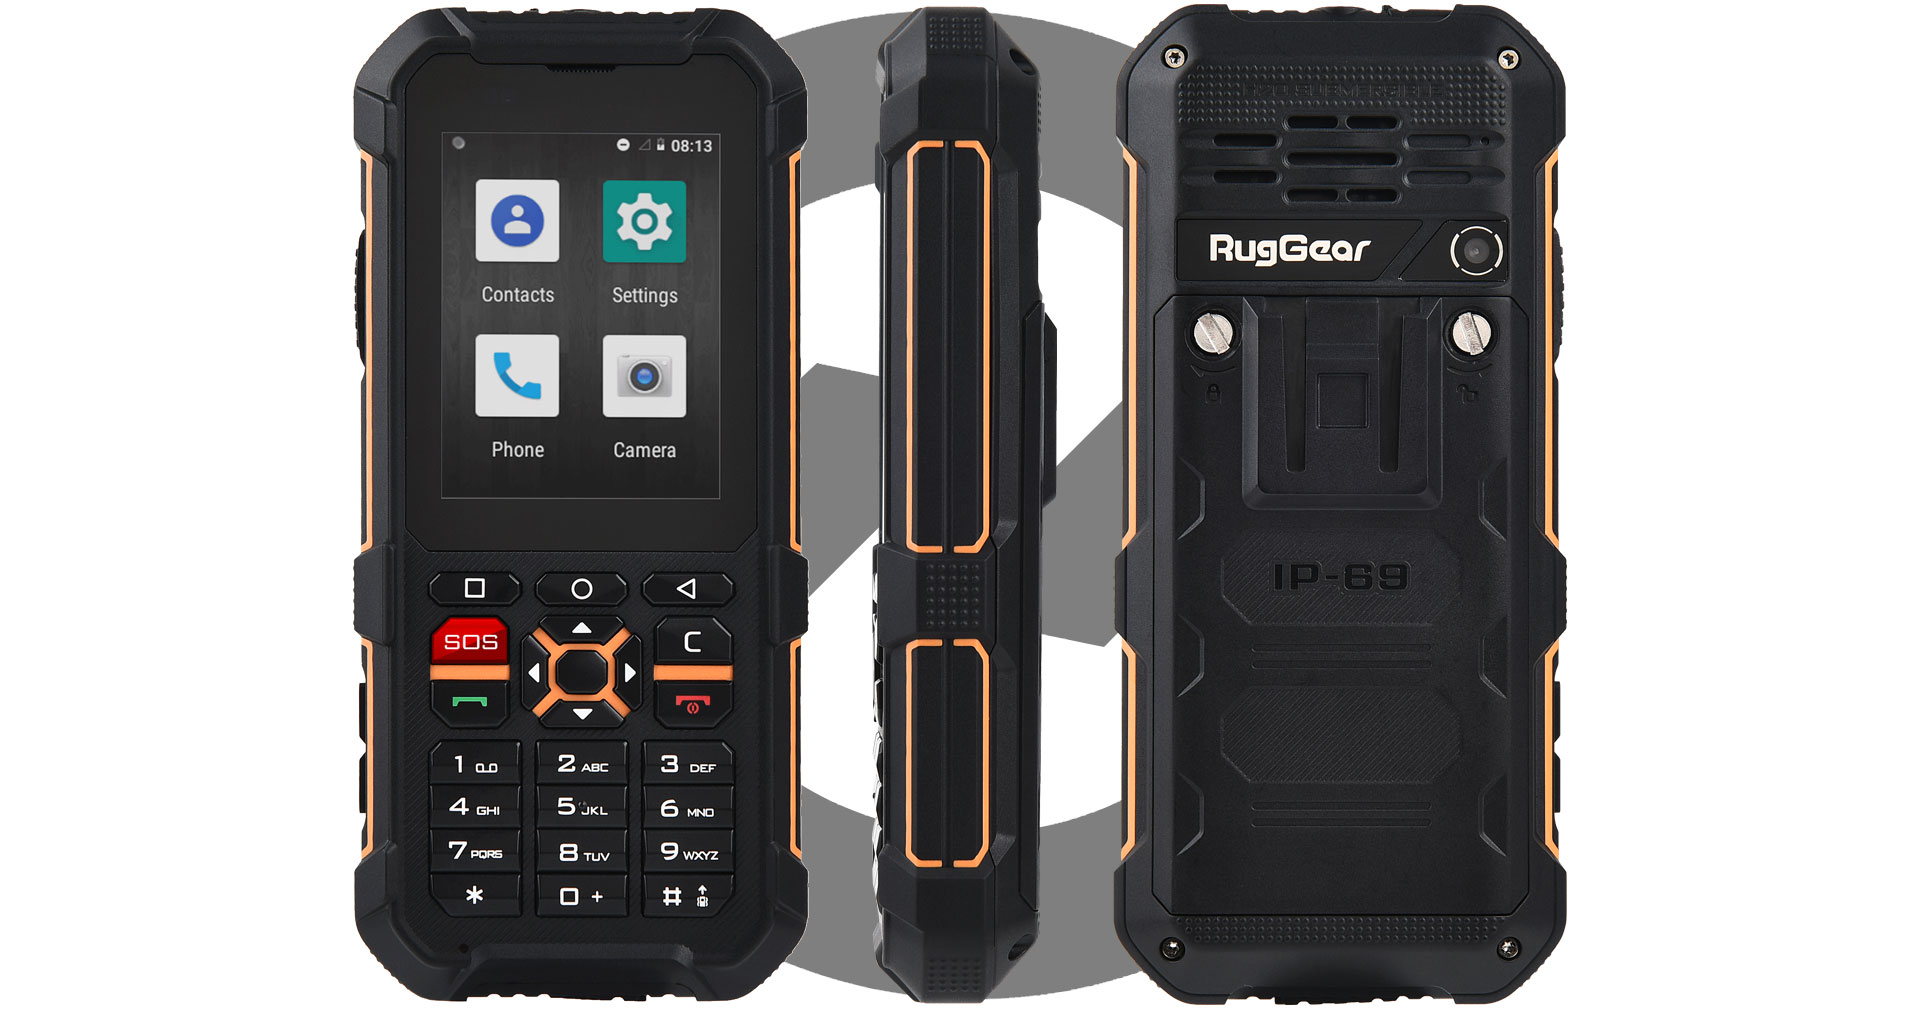 RugGear RG170 in detail